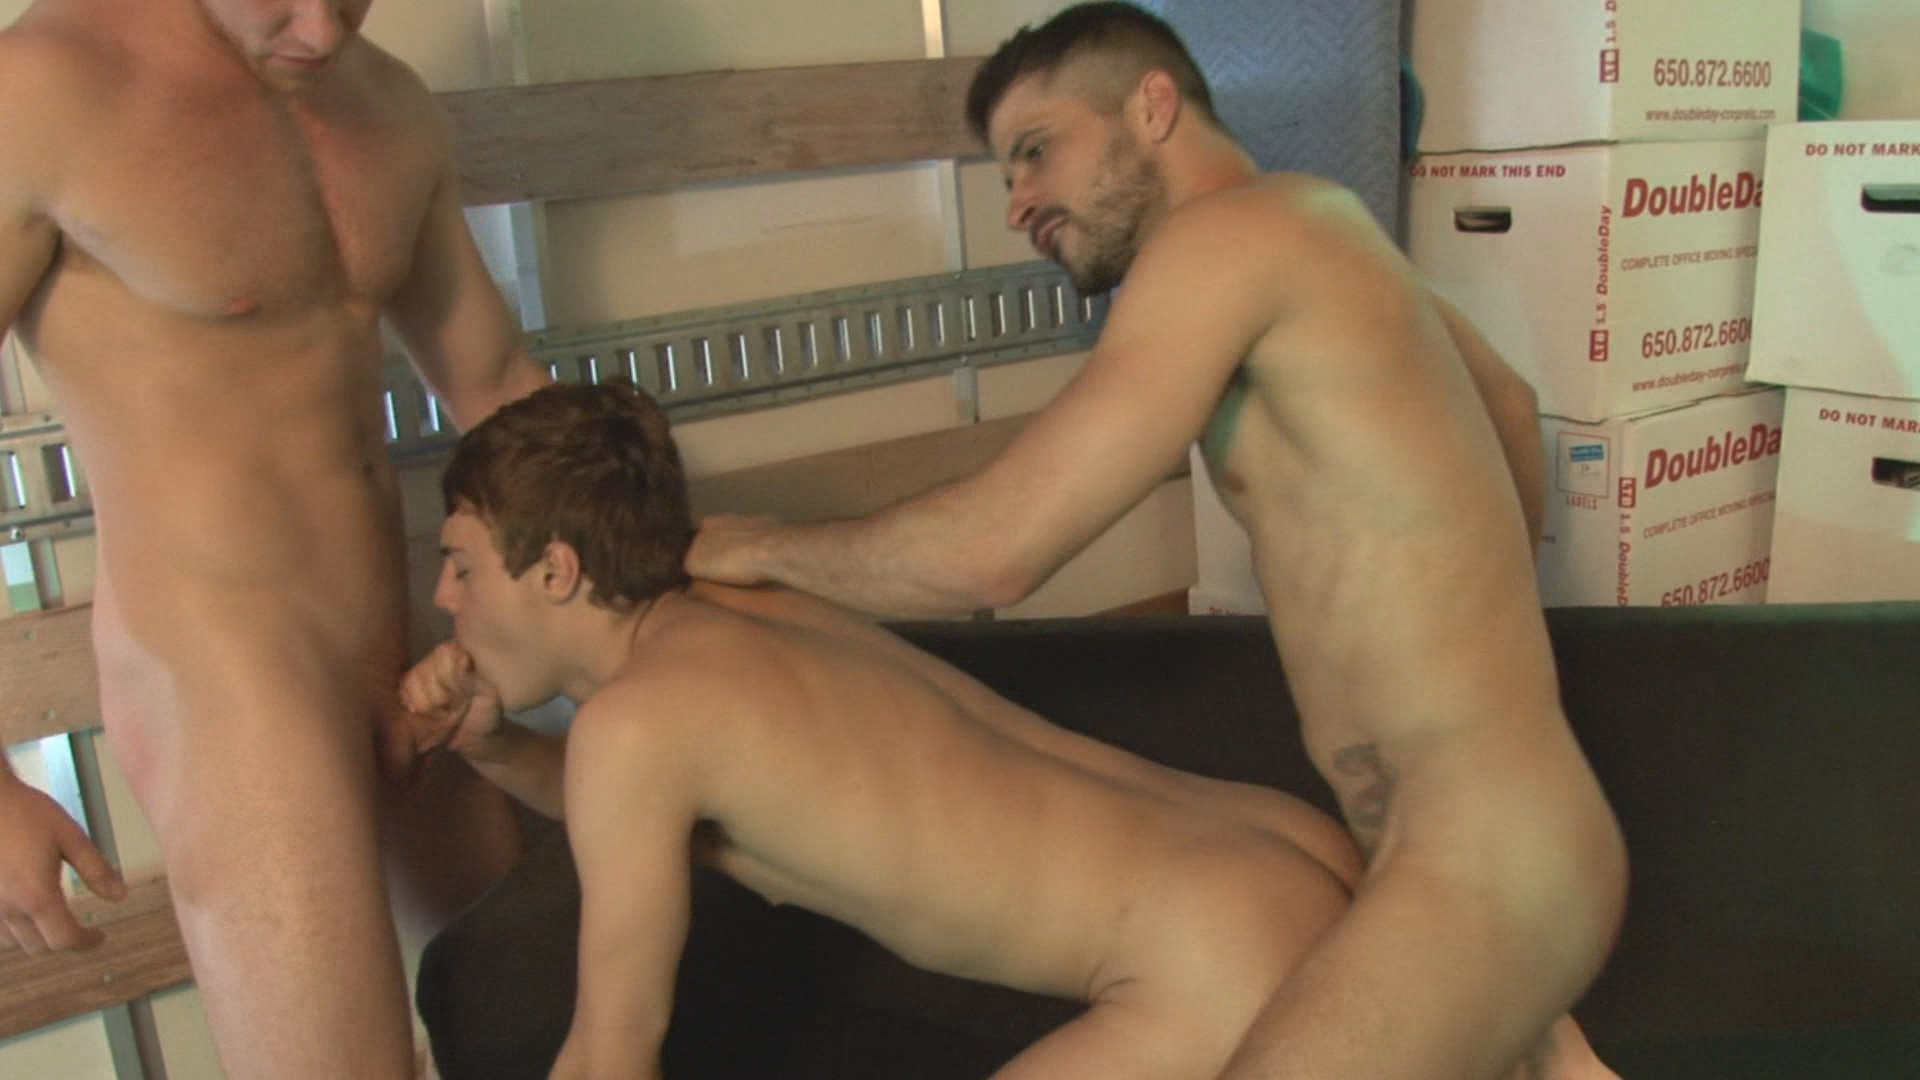 Frat House Cream 2 Xvideo gay